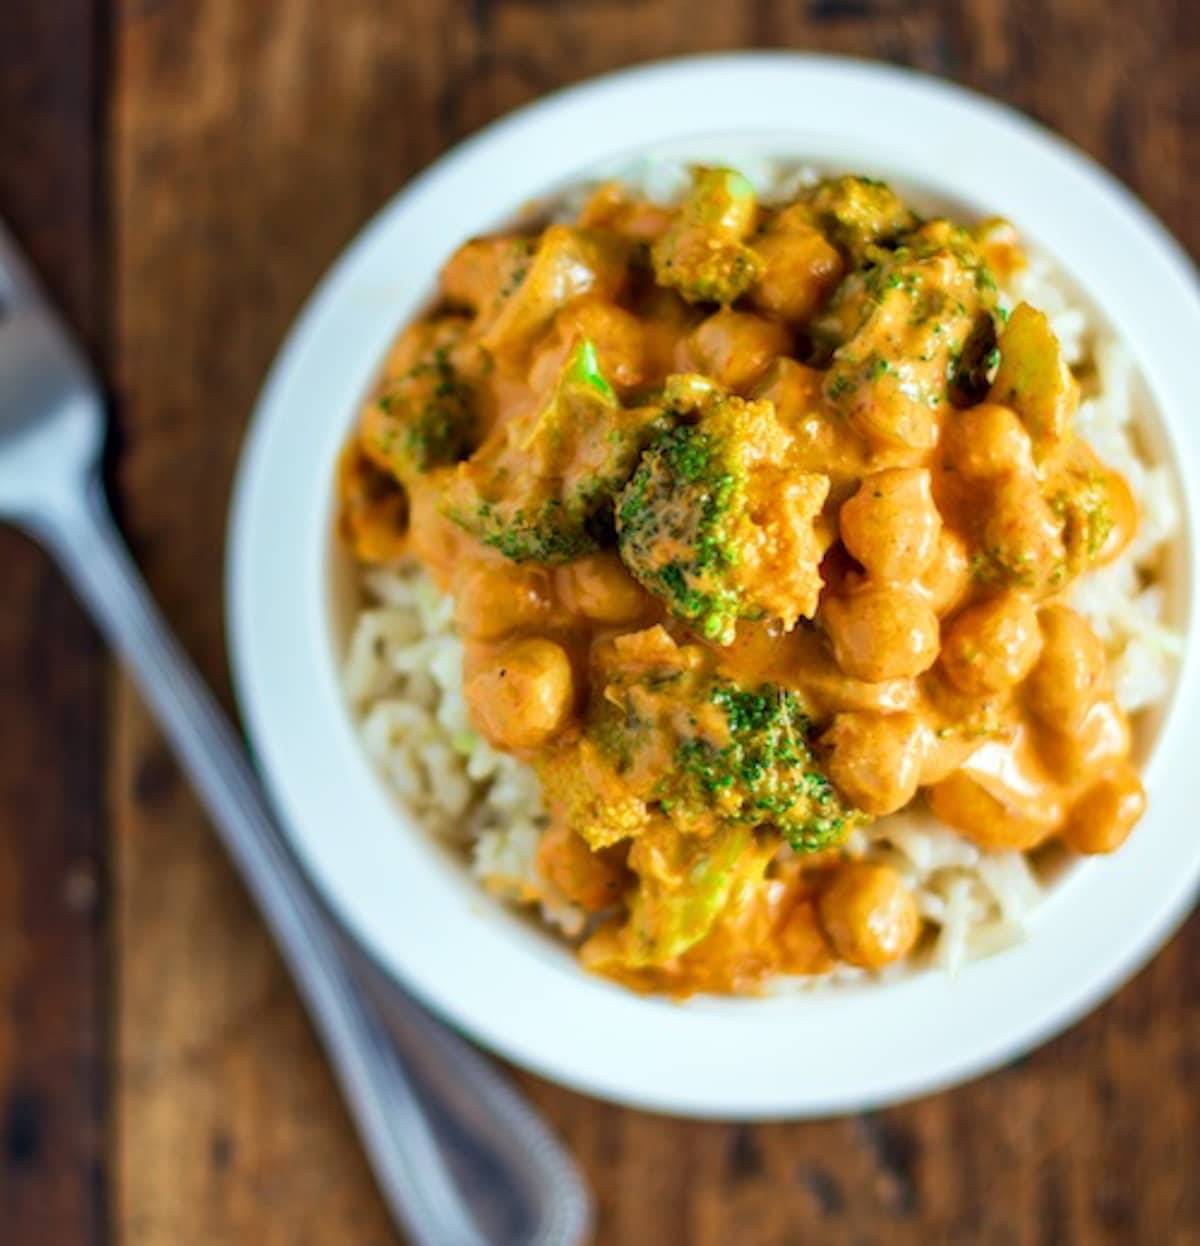 This 5-ingredient coconut curry has broccoli and chickpeas and a creamy coconut curry sauce that comes together super fast. | pinchofyum.com